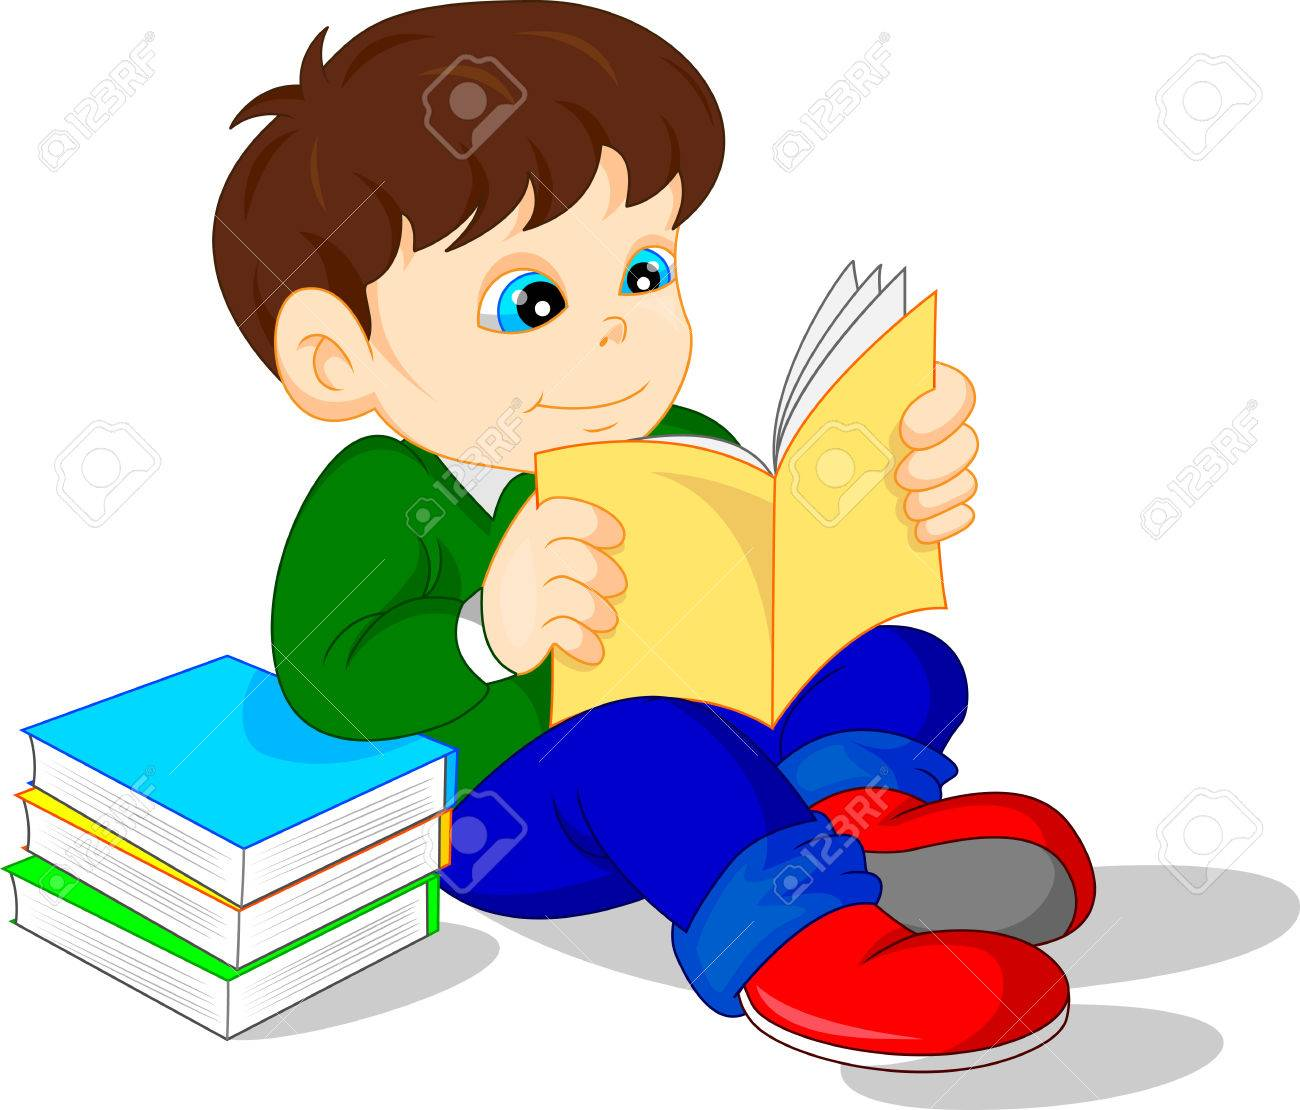 cute boy reading books.